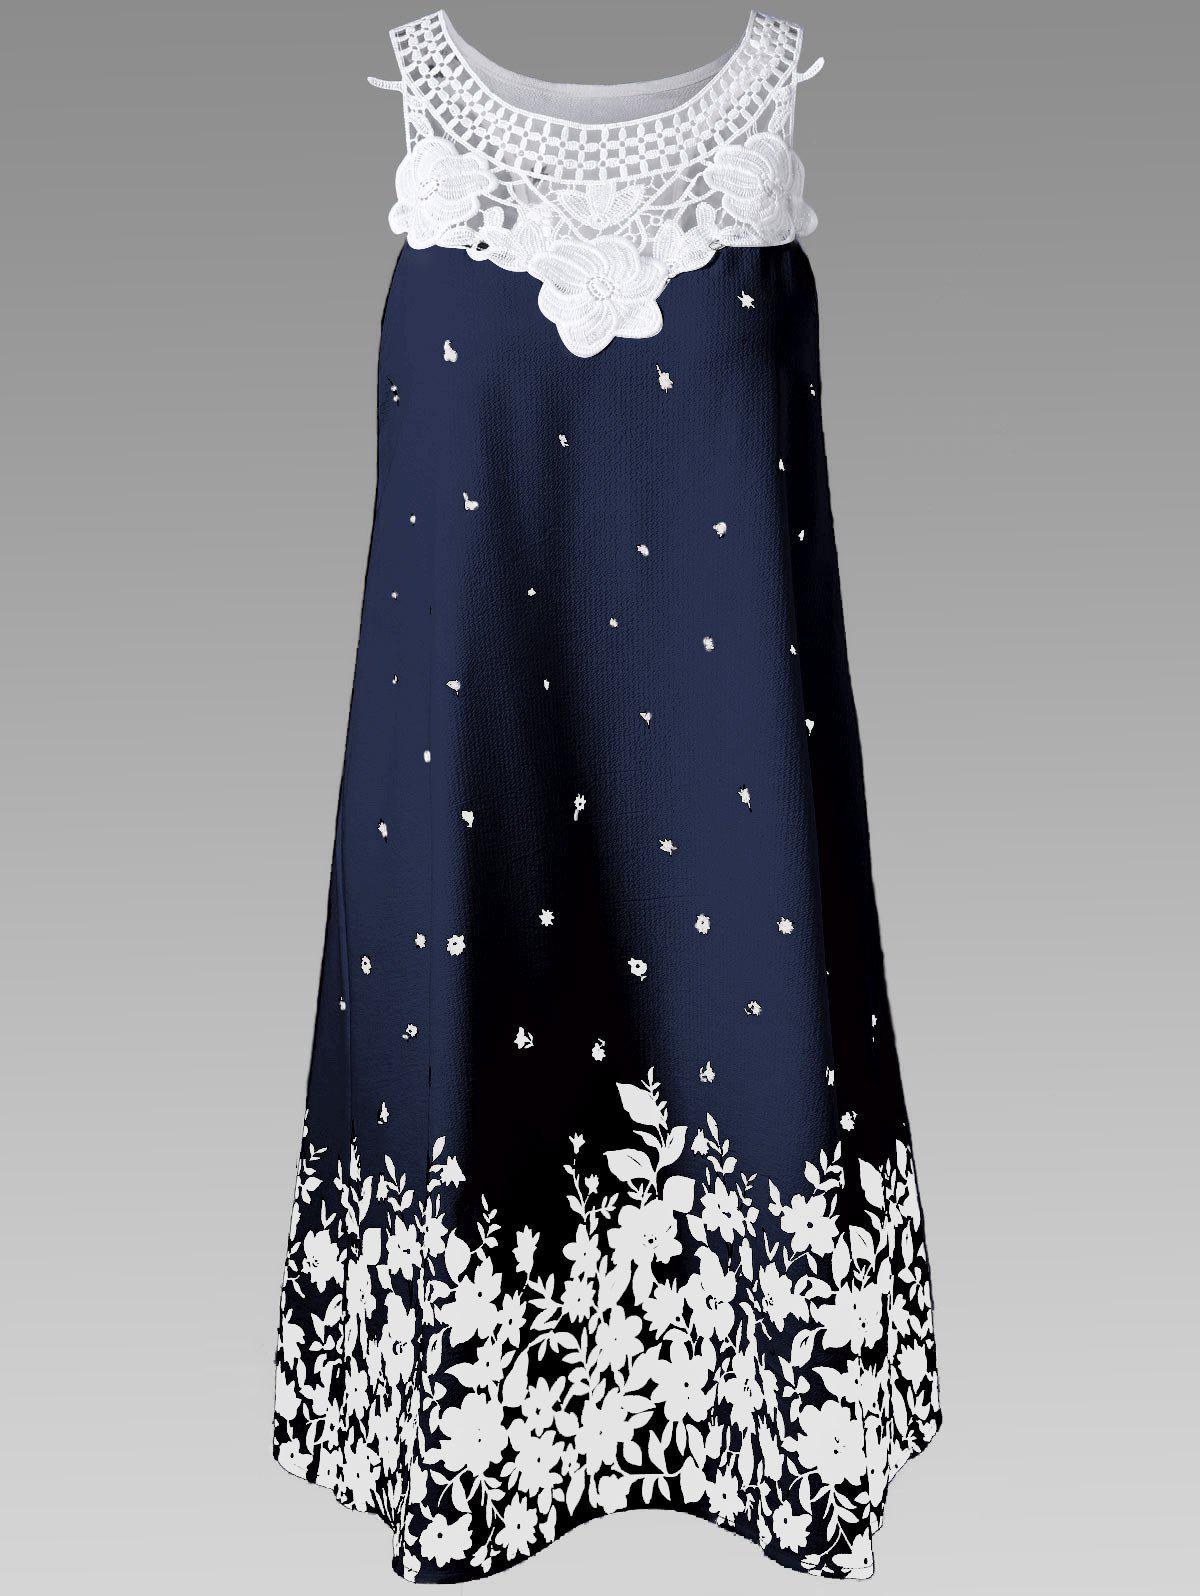 Casual Lace Panel Racerback Floral Tent DressWOMEN<br><br>Size: XL; Color: PURPLISHBLUE + WHITE; Style: Casual; Material: Polyester; Silhouette: A-Line; Dresses Length: Knee-Length; Neckline: Round Collar; Sleeve Length: Sleeveless; Pattern Type: Floral; With Belt: No; Season: Summer; Weight: 0.3600kg; Package Contents: 1 x Dress; Occasion: Beach and Summer,Casual,Club,Outdoor;